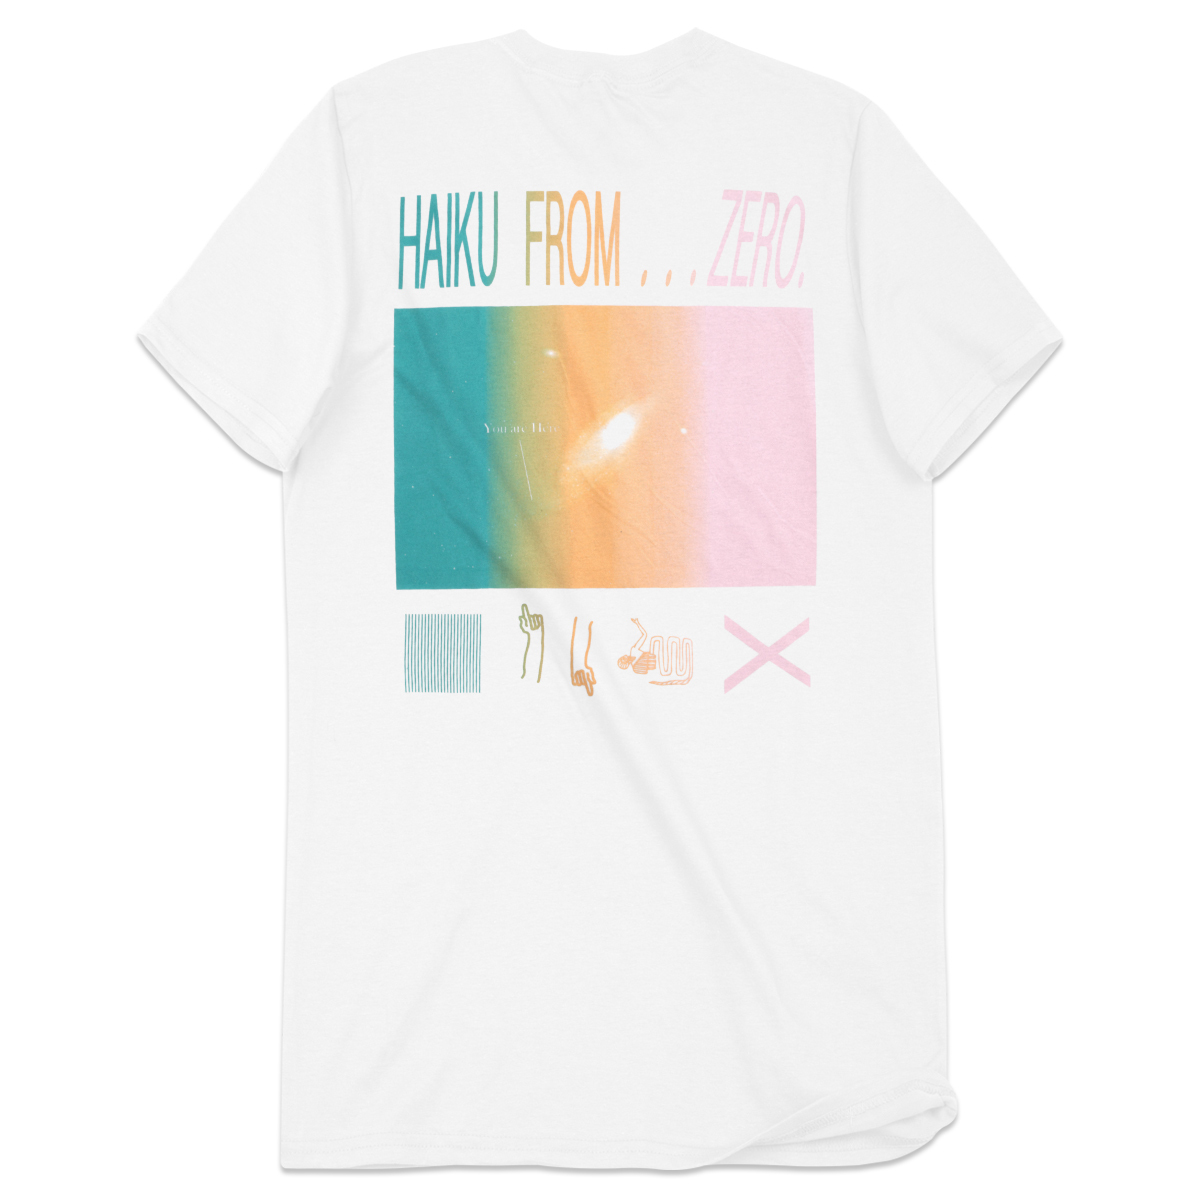 Cut Copy Haiku From Zero T-Shirt